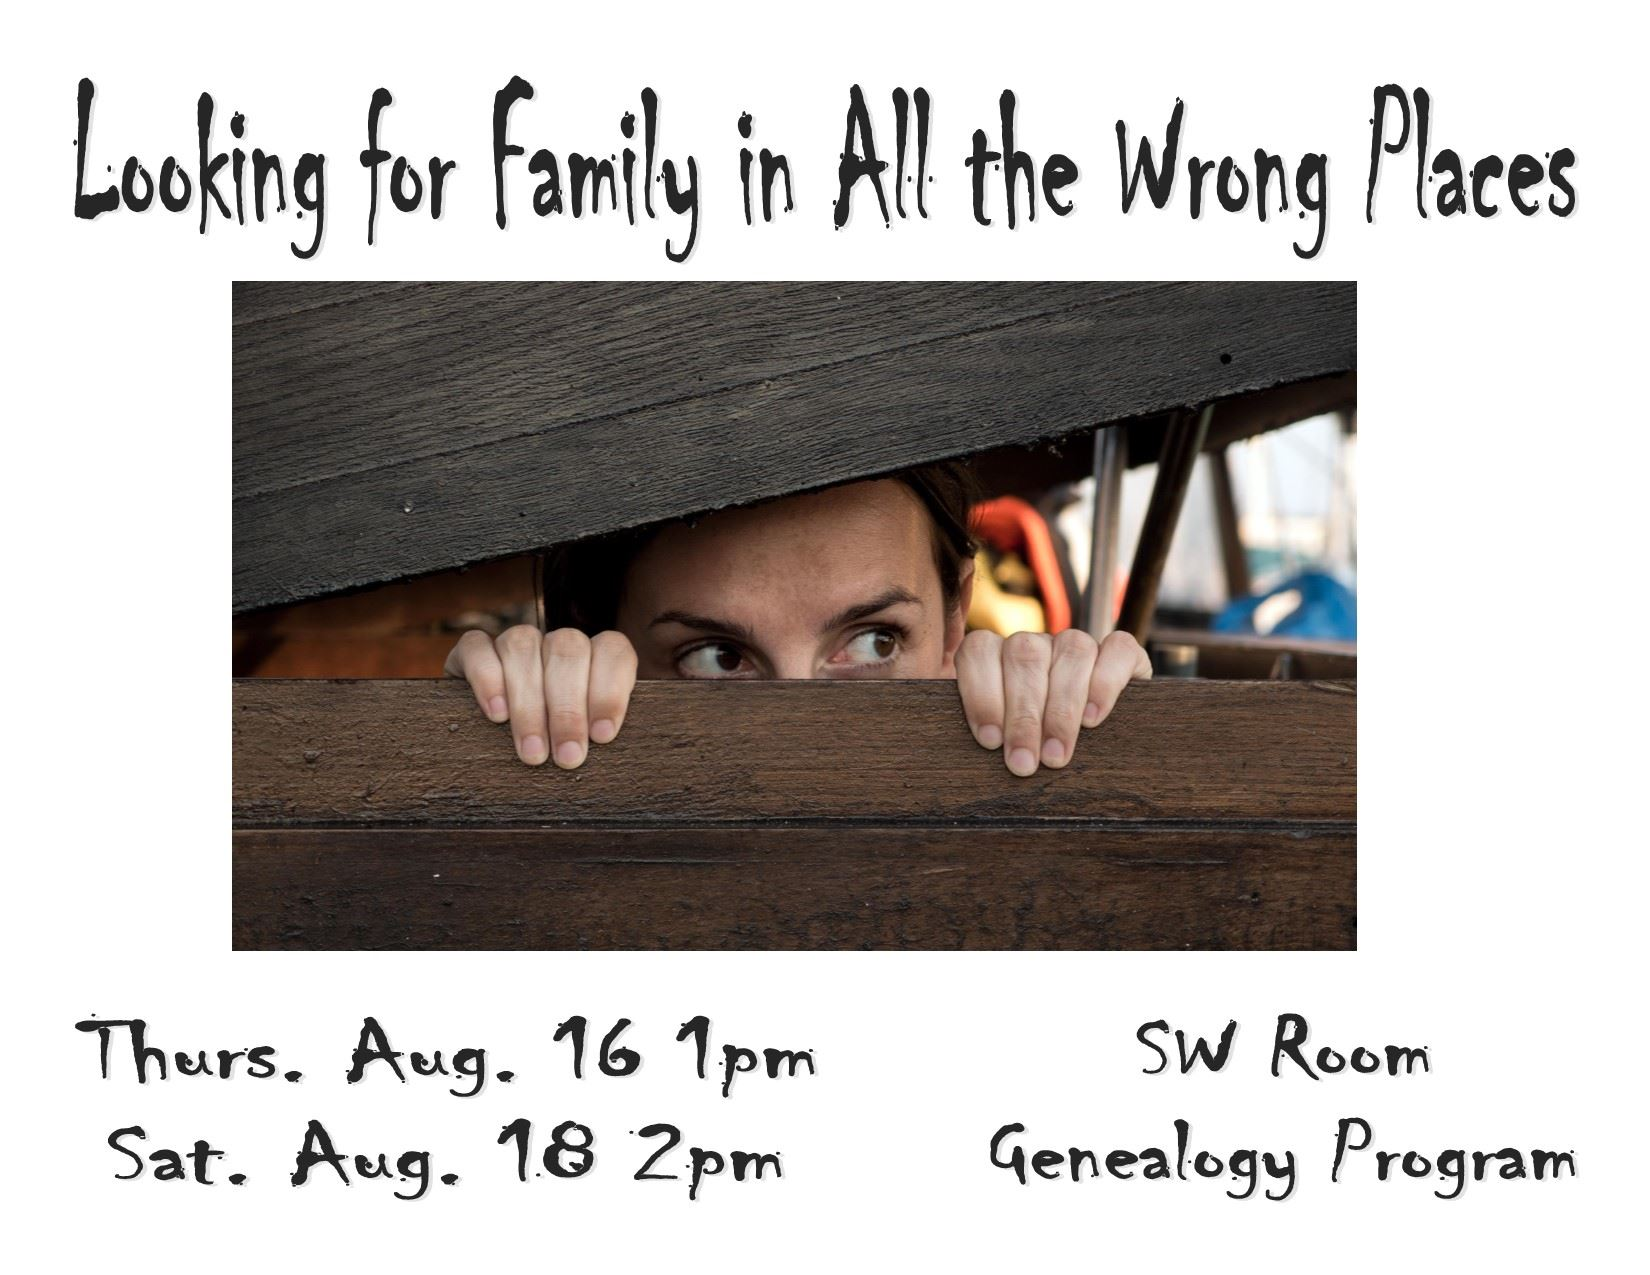 Genealogy program in August: Looking for Family in All the Wrong Places